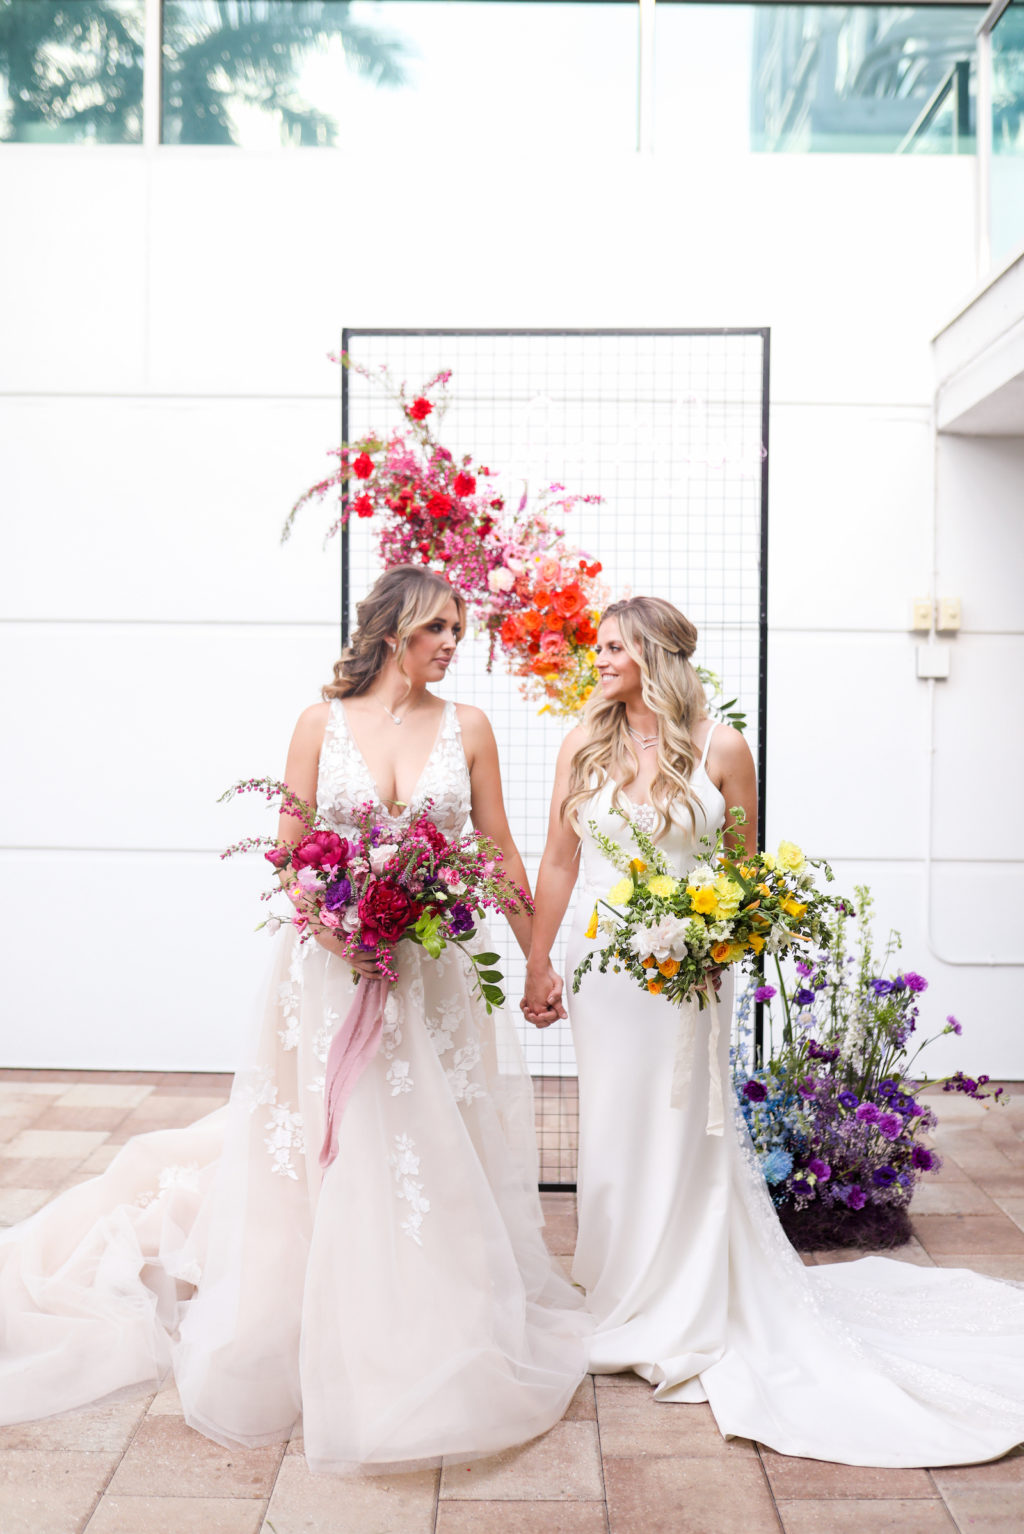 Gay LGBTQ+ Pride Wedding, Lesbian Brides Holding Hands with Red and Yellow Floral Bouquets, Black Metal Grid Mesh Rectangle Arch with Rainbow Flower Arrangement, Pink, Orange, Purple and Blue   Tampa Bay Wedding Planner Stephany Perry Events   Rooftop Wedding Venue Hotel Alba Tampa